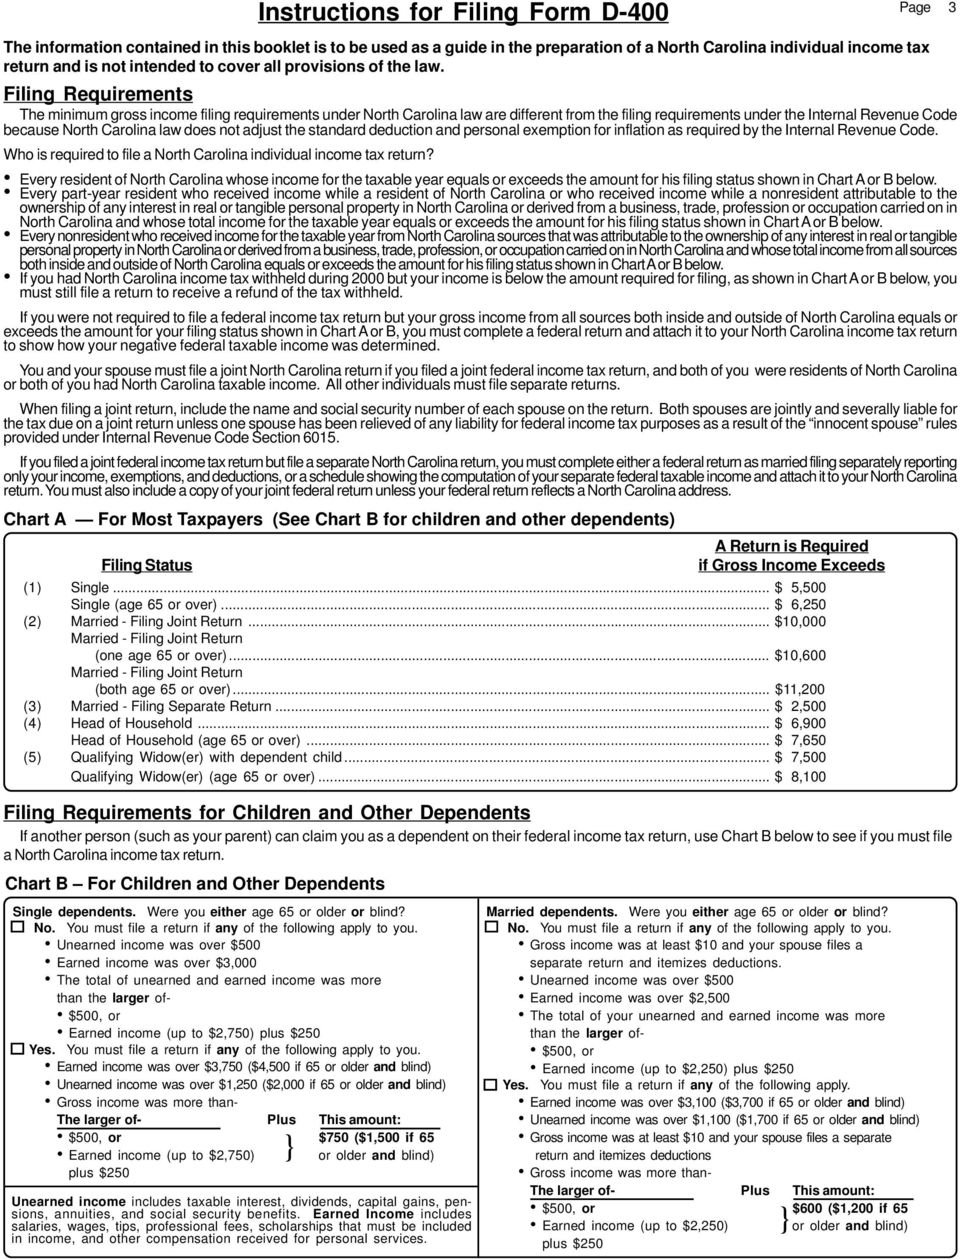 nc child support calculator worksheet b worksheets releaseboard free printable worksheets and. Black Bedroom Furniture Sets. Home Design Ideas